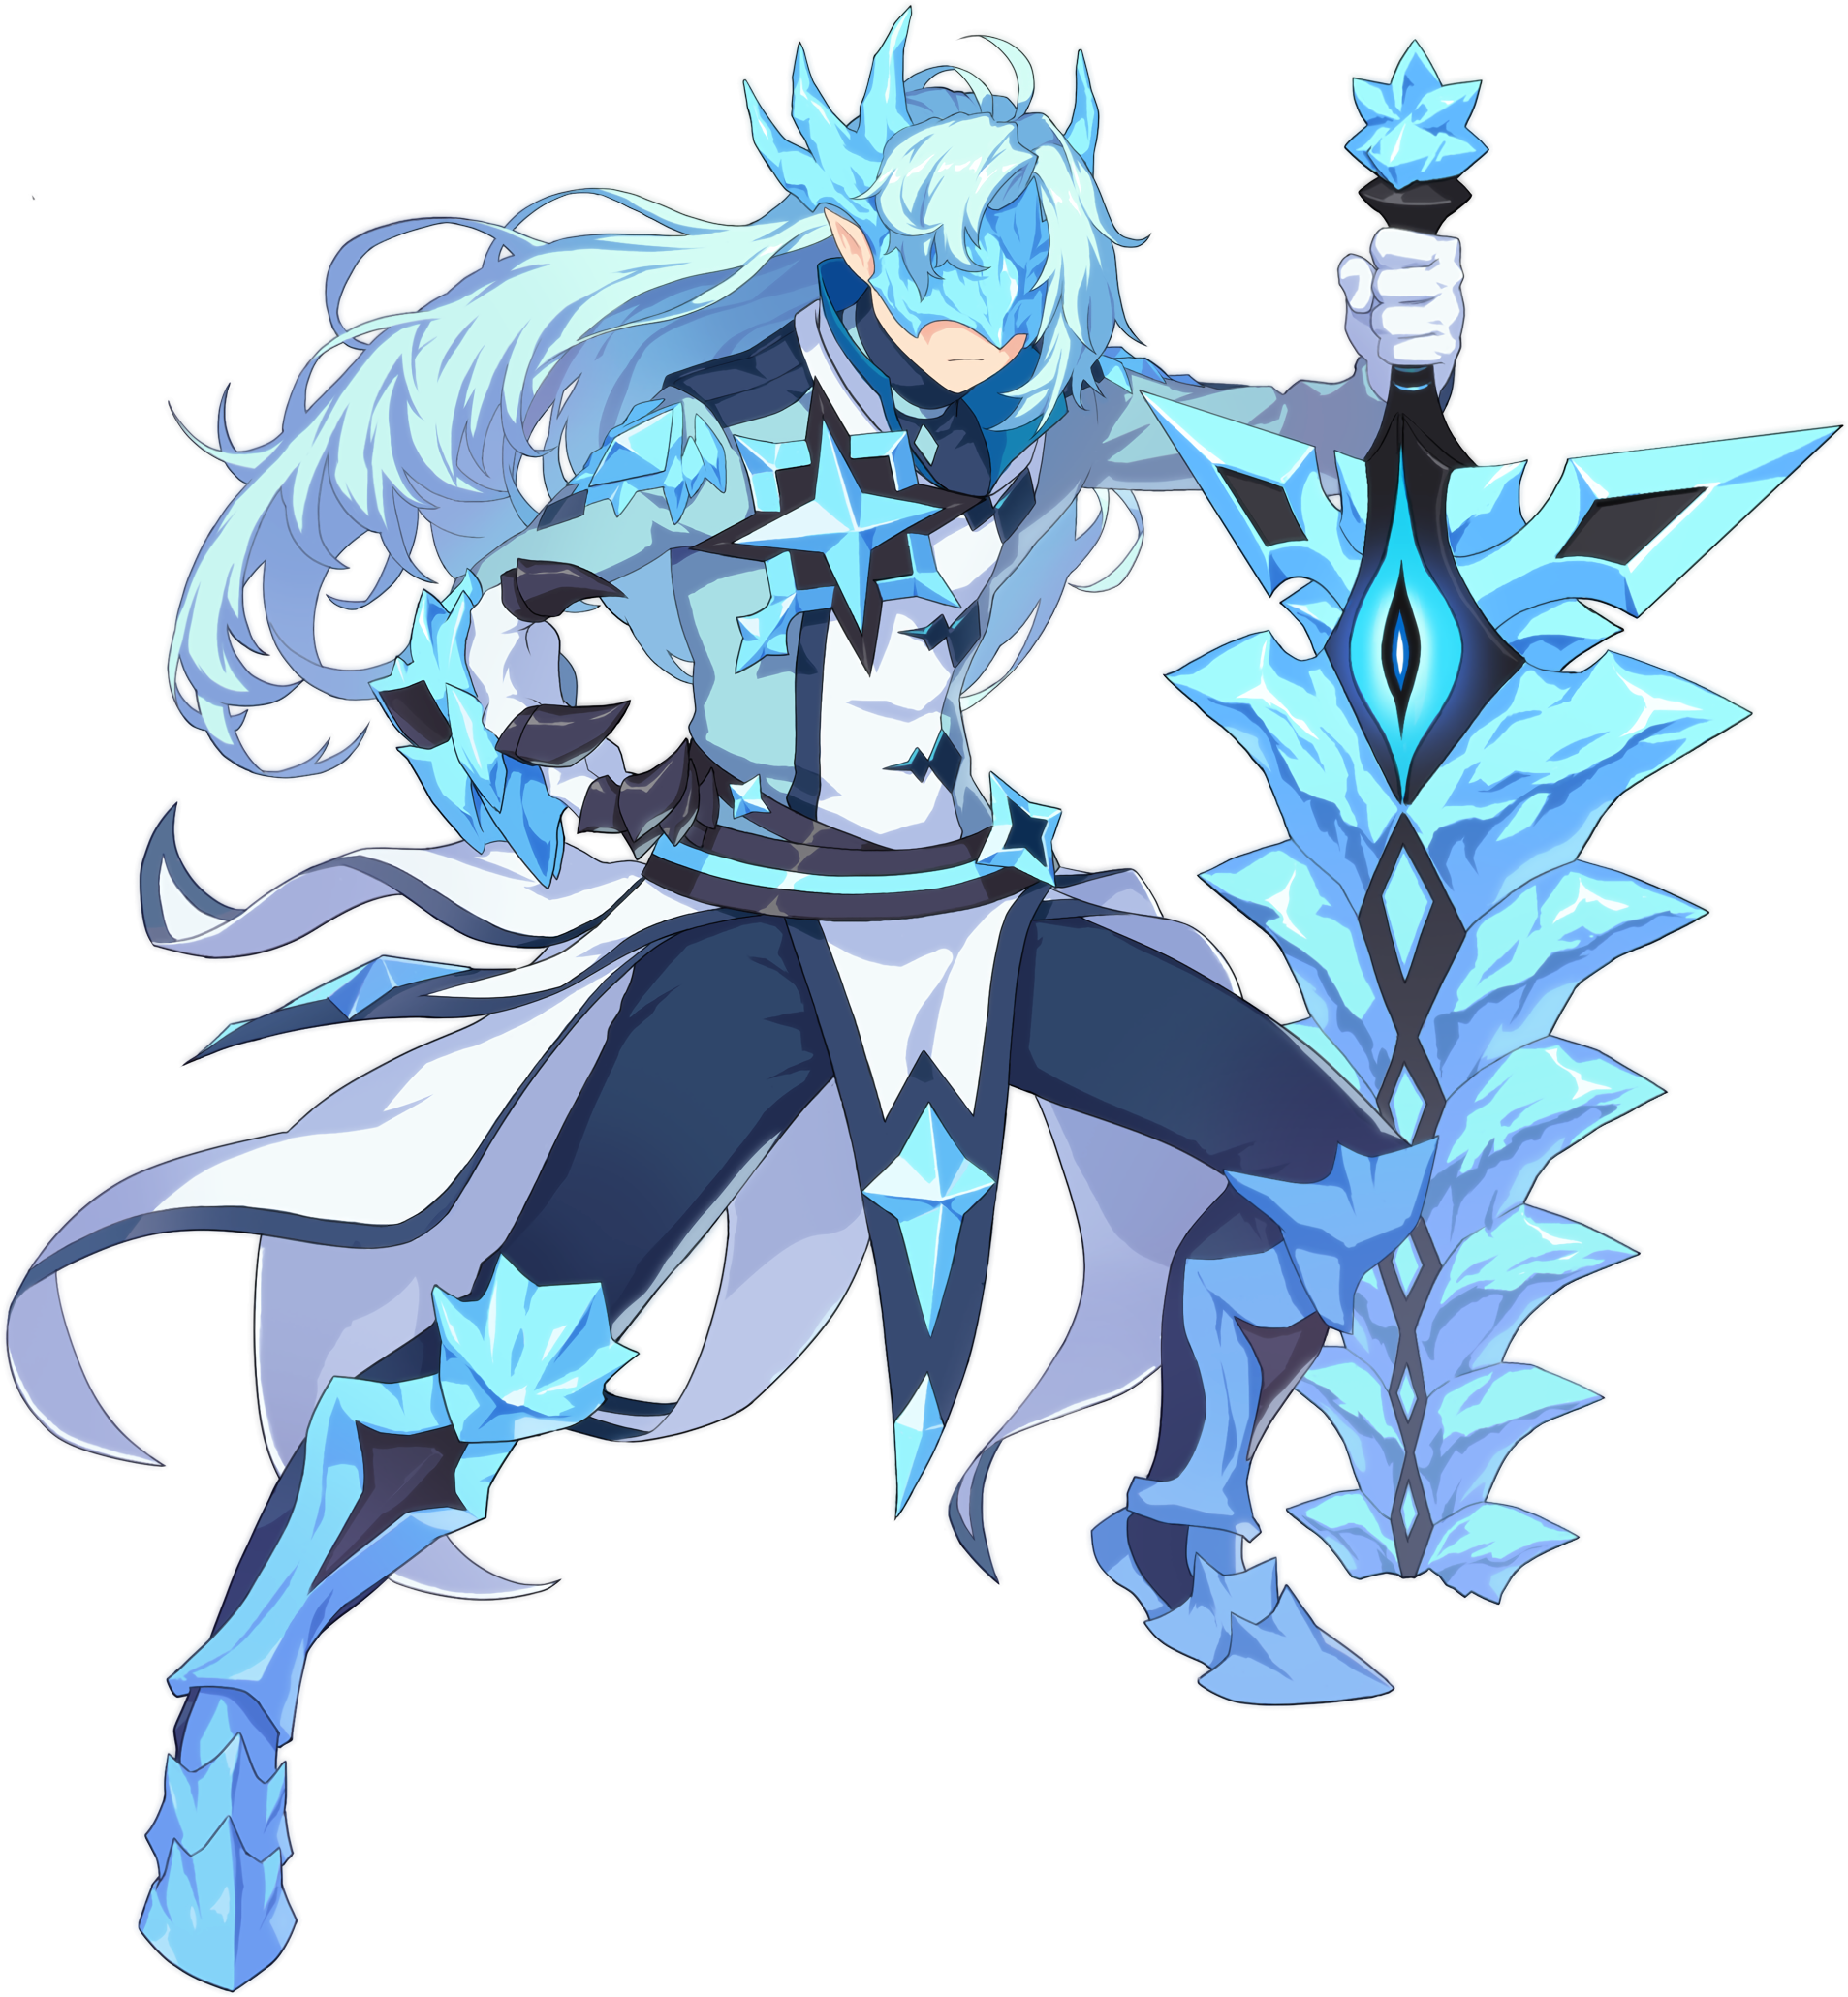 Zero Grand Chase Dimensional Chaser Grand Chase Wiki Fandom Powered By Wikia Fantasy Character Design Character Design Character Art